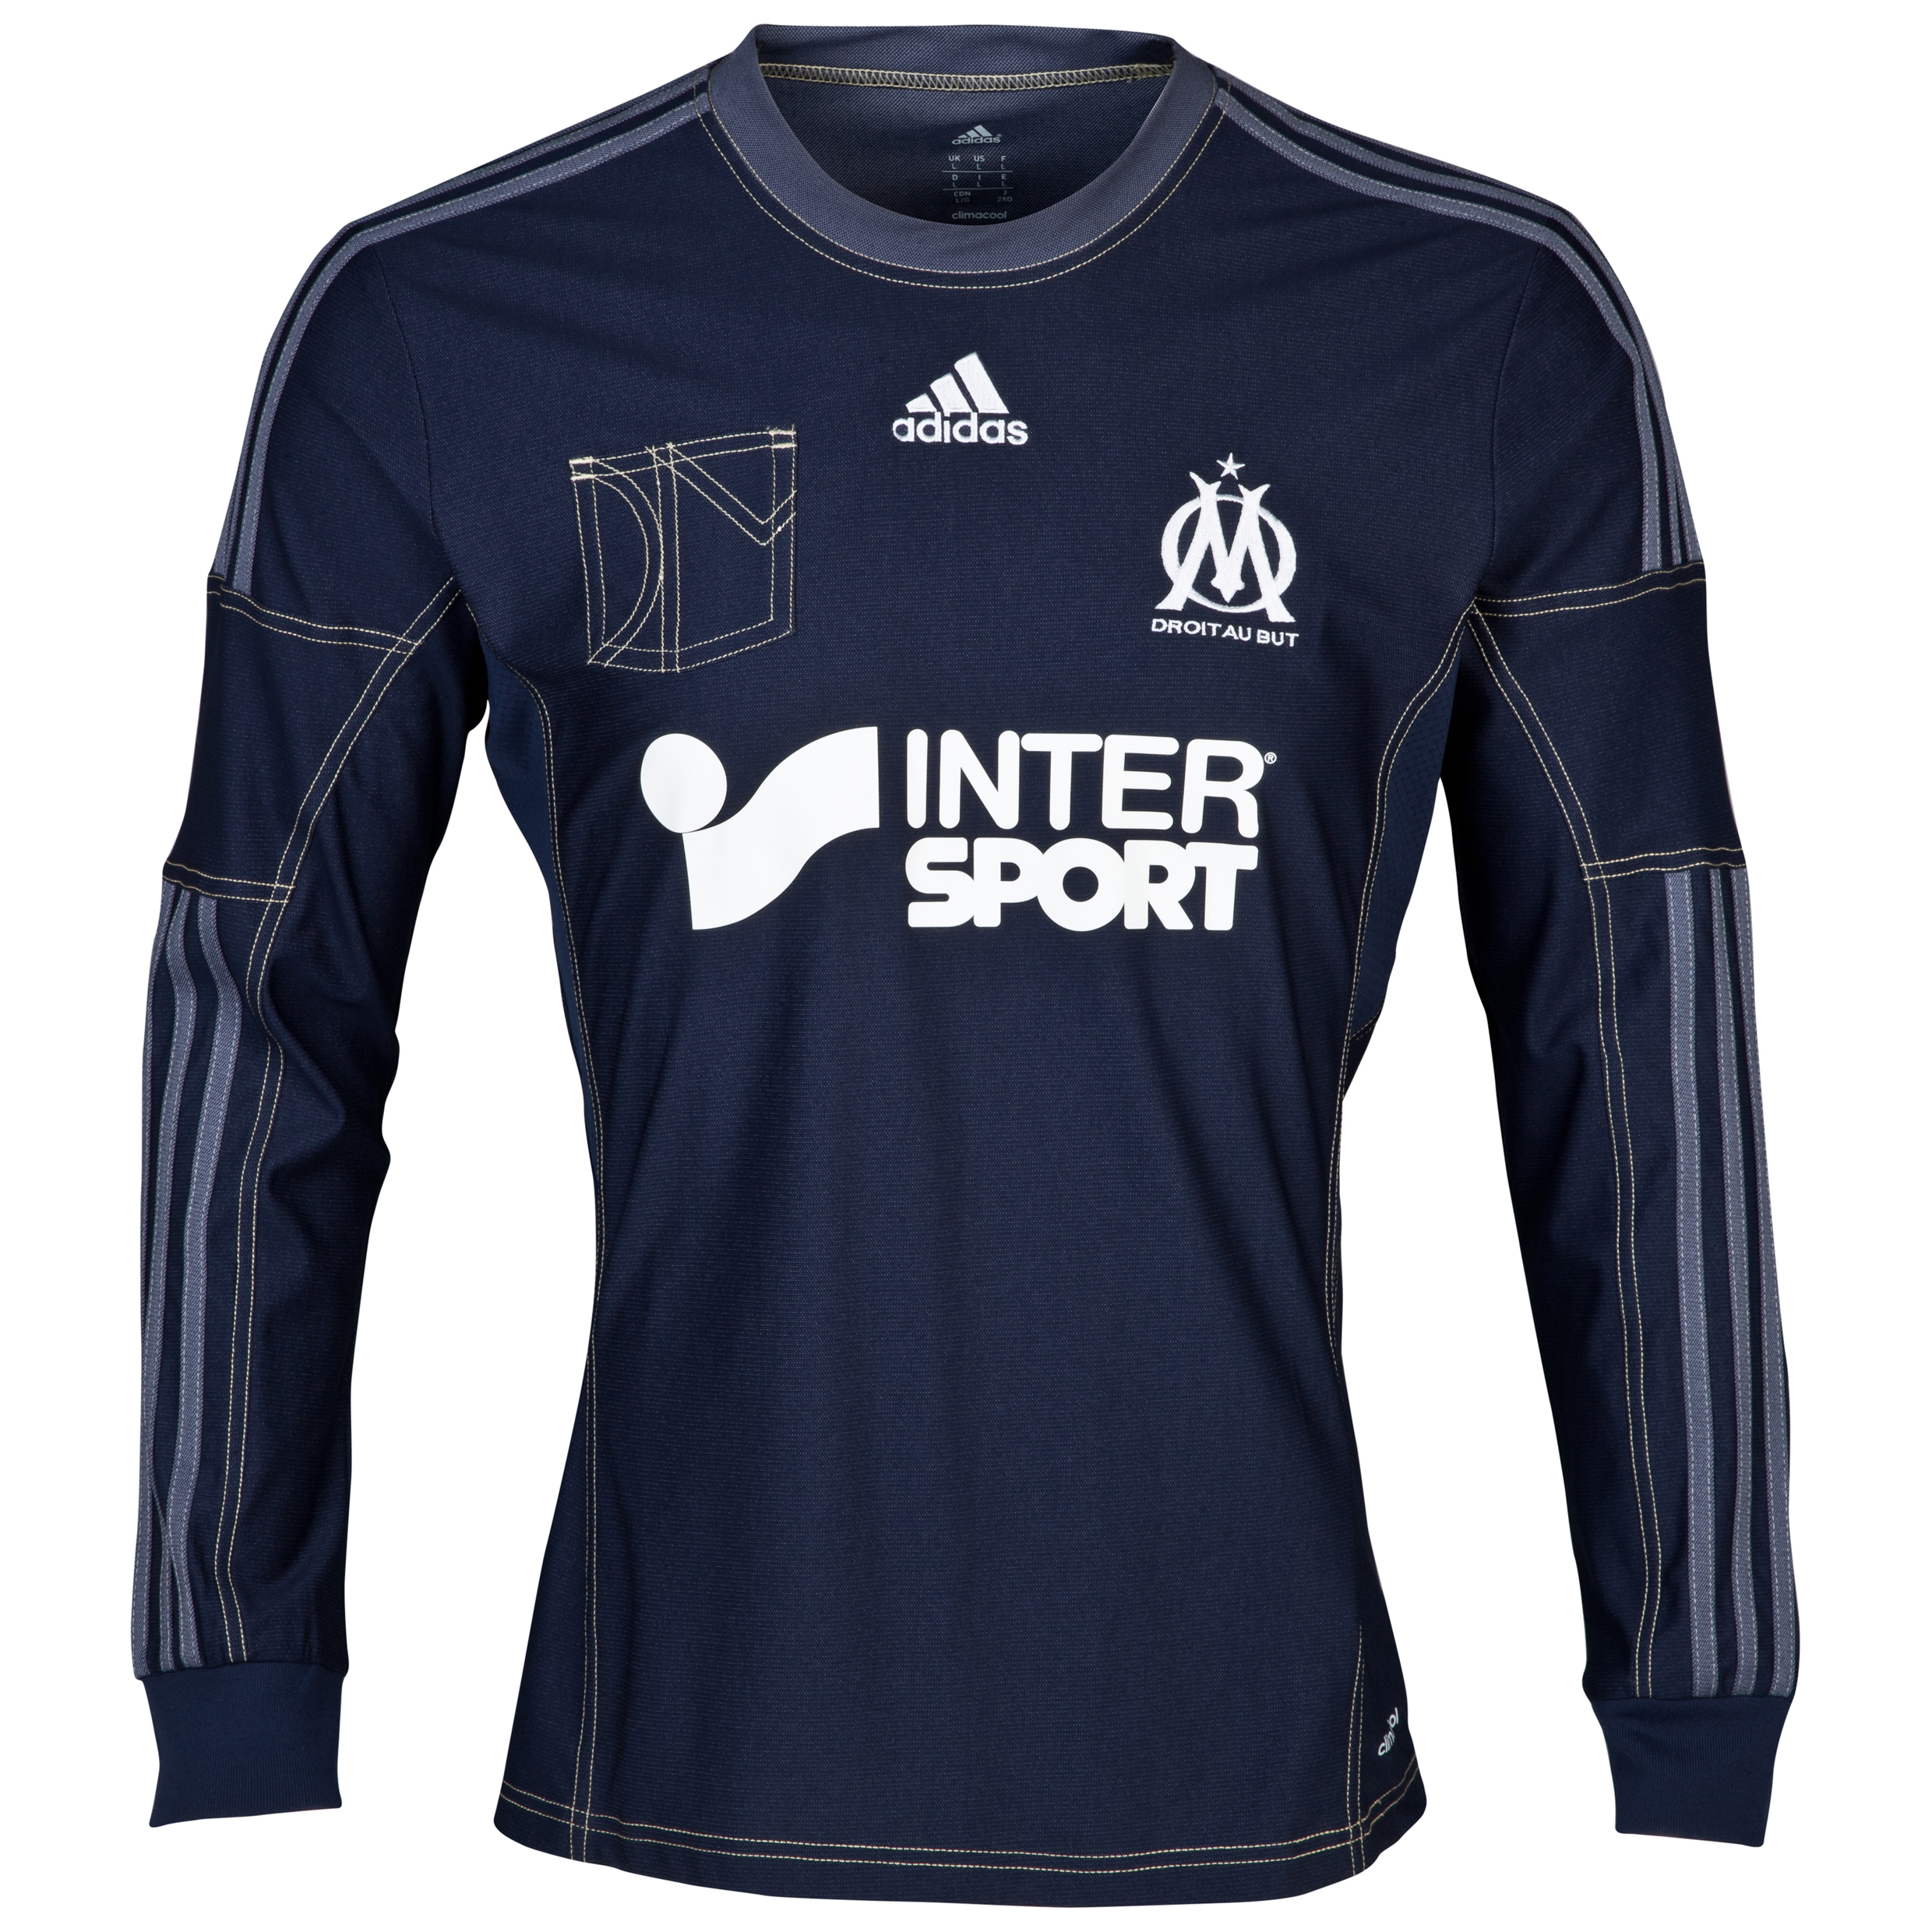 Olympique de Marseille Away Shirt LS 2013/14 - Mens Lt Blue